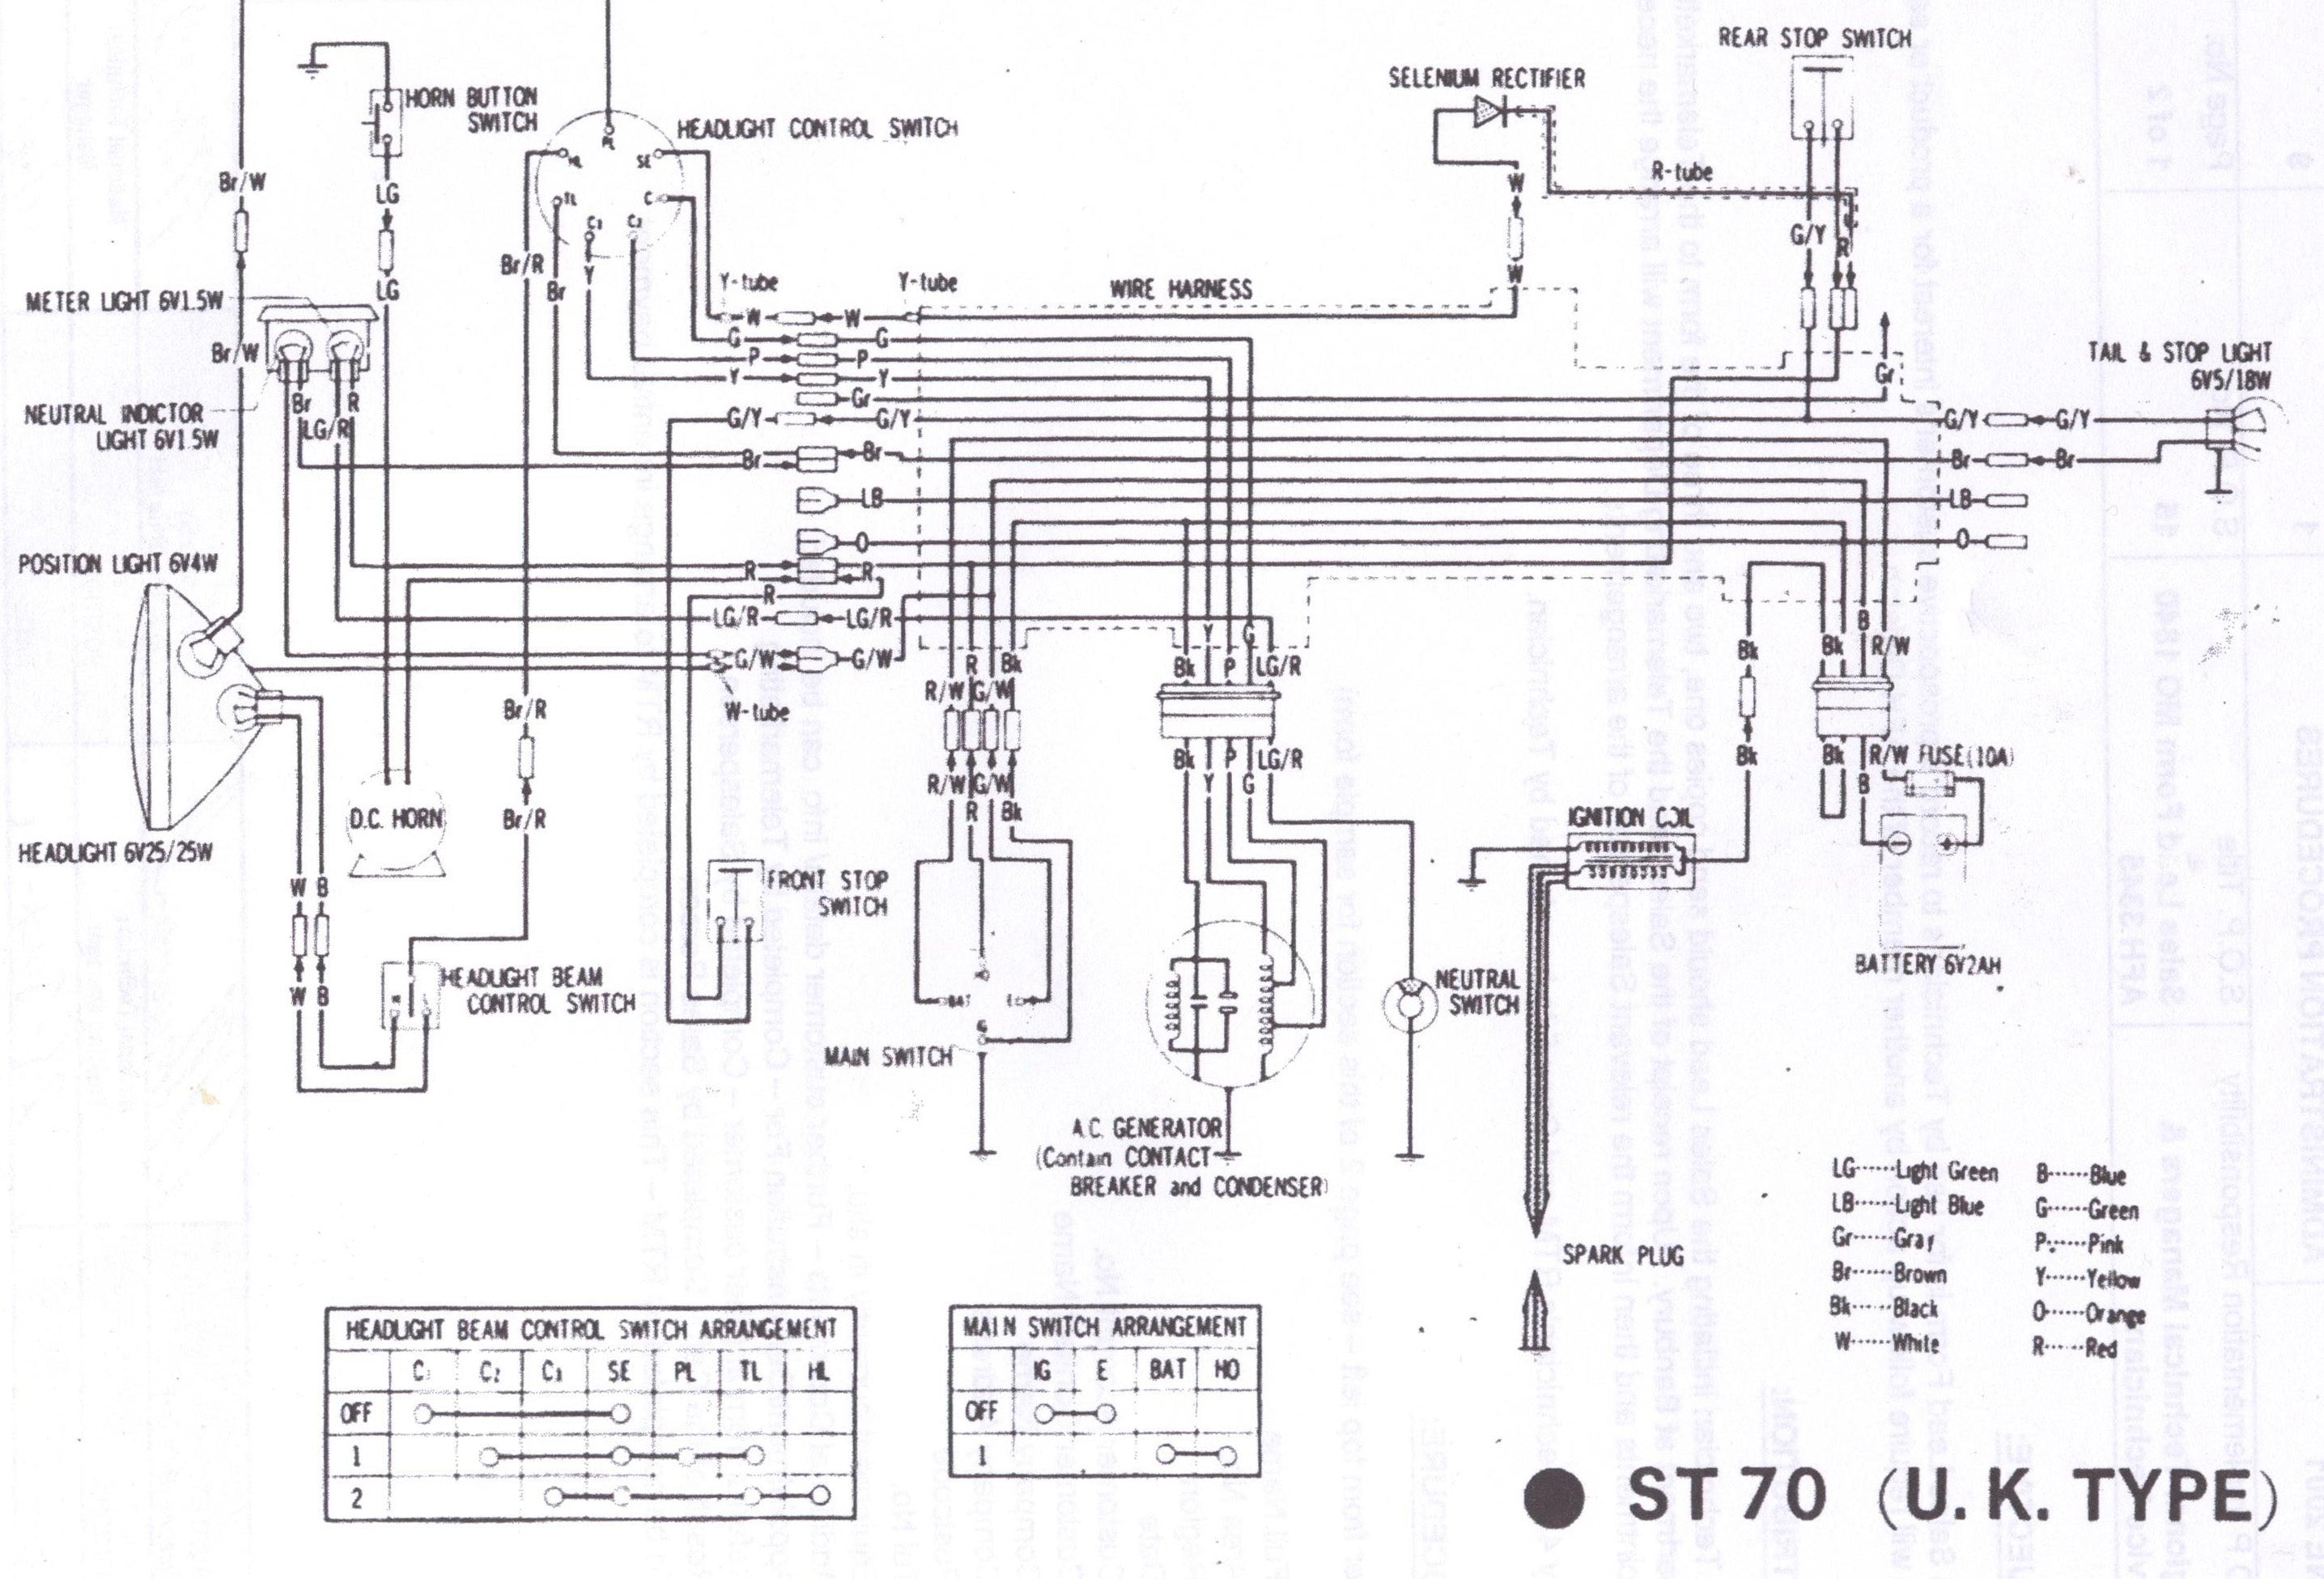 Honda St 50 Wiring Diagram Electrical Drawing 1982 Cb750 Dax 6v St50 St70 Shire Bikes Parts Accesories Suitable Rh Shirebikes Co Uk